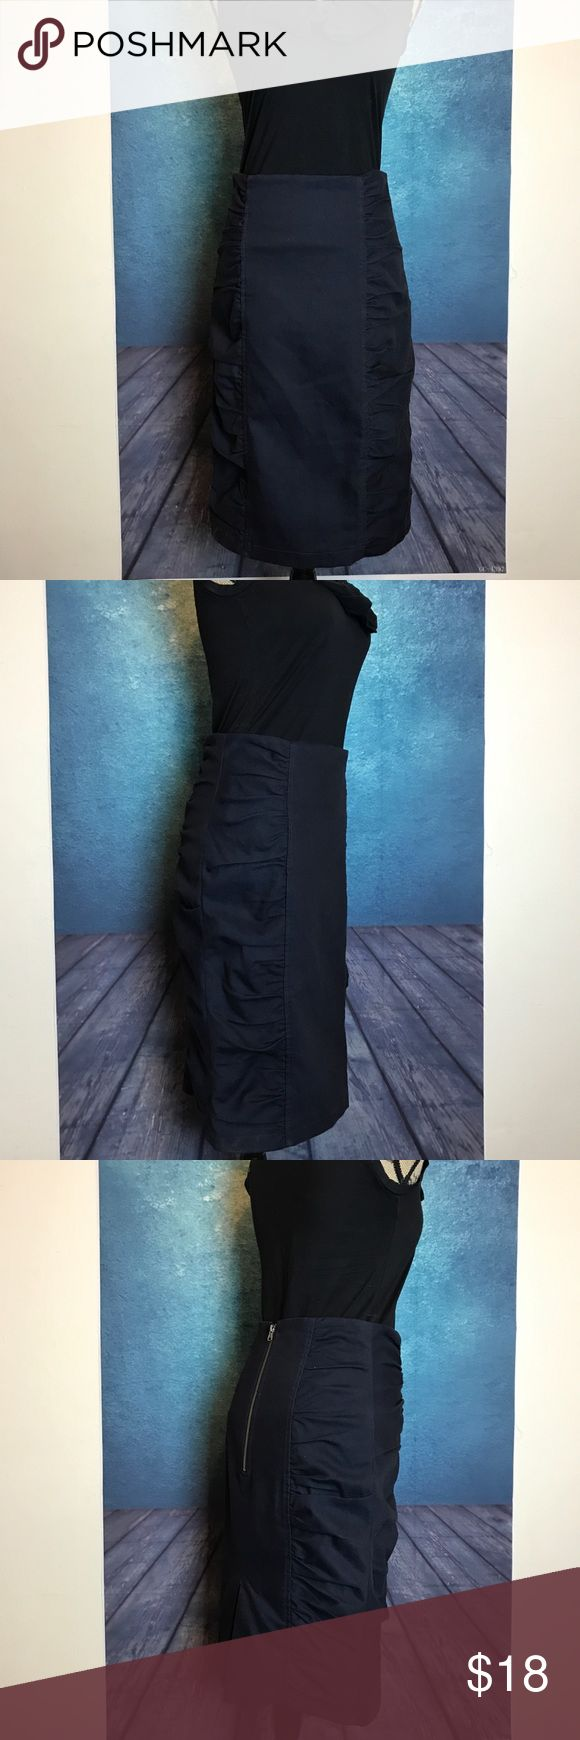 Nanette lepore Black Tube Skirt Size 6 MEASUREMENTS∴ in inches  Waist---->15 Bottom Hem Width--->18 Length---->25  Measurements Are Approximate  And May Vary Slightly. #4 Nanette Lepore Skirts Pencil